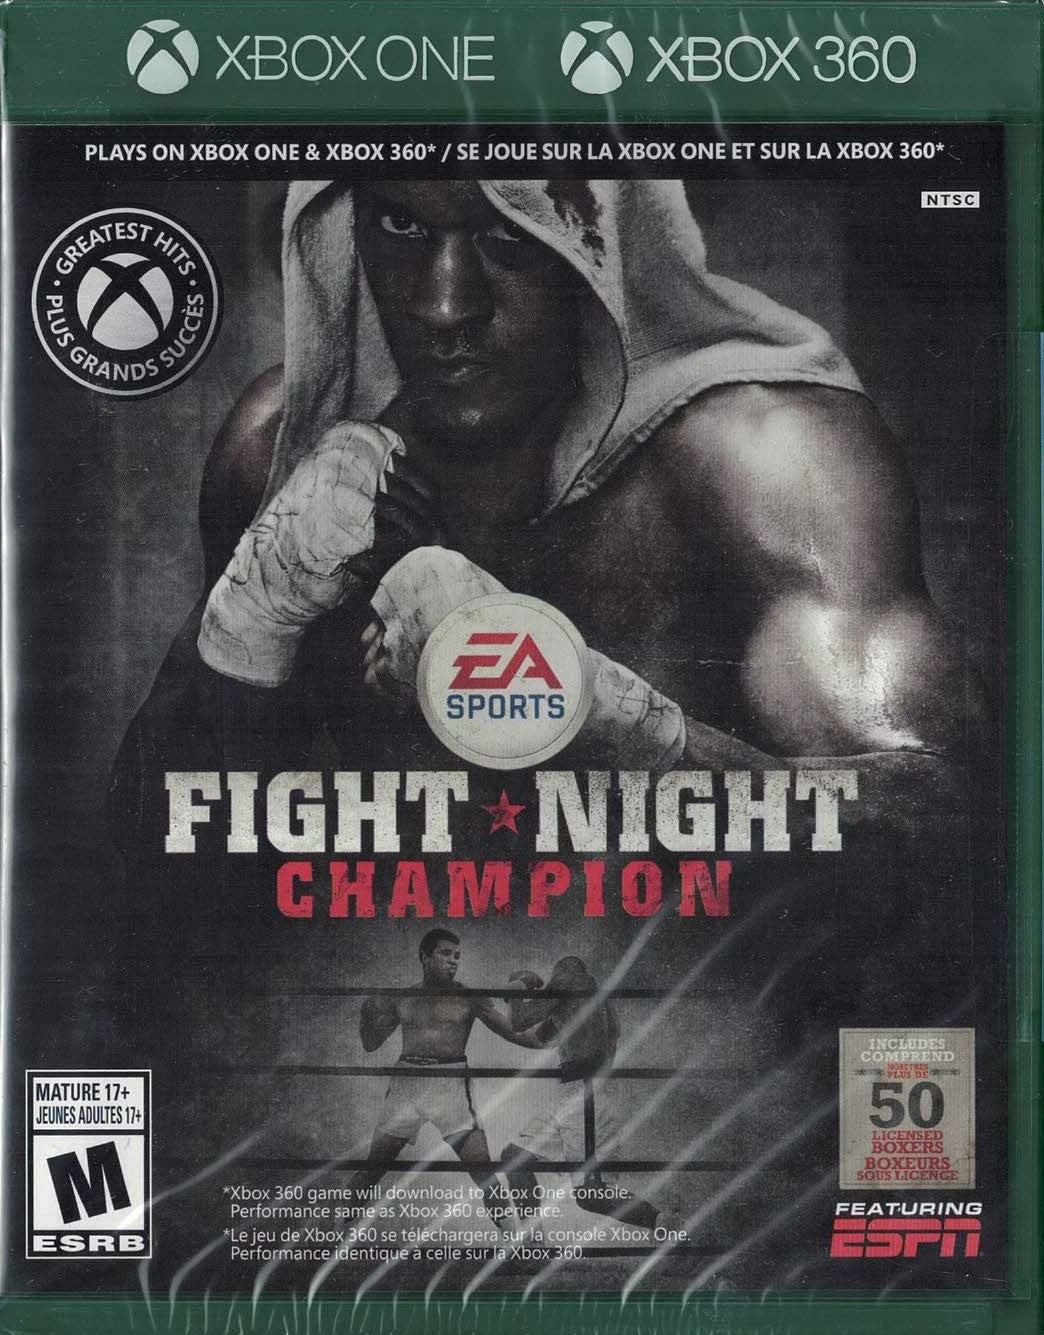 Fight Night Champion - Xbox 360/Xbox One by EA Games (Image #4)